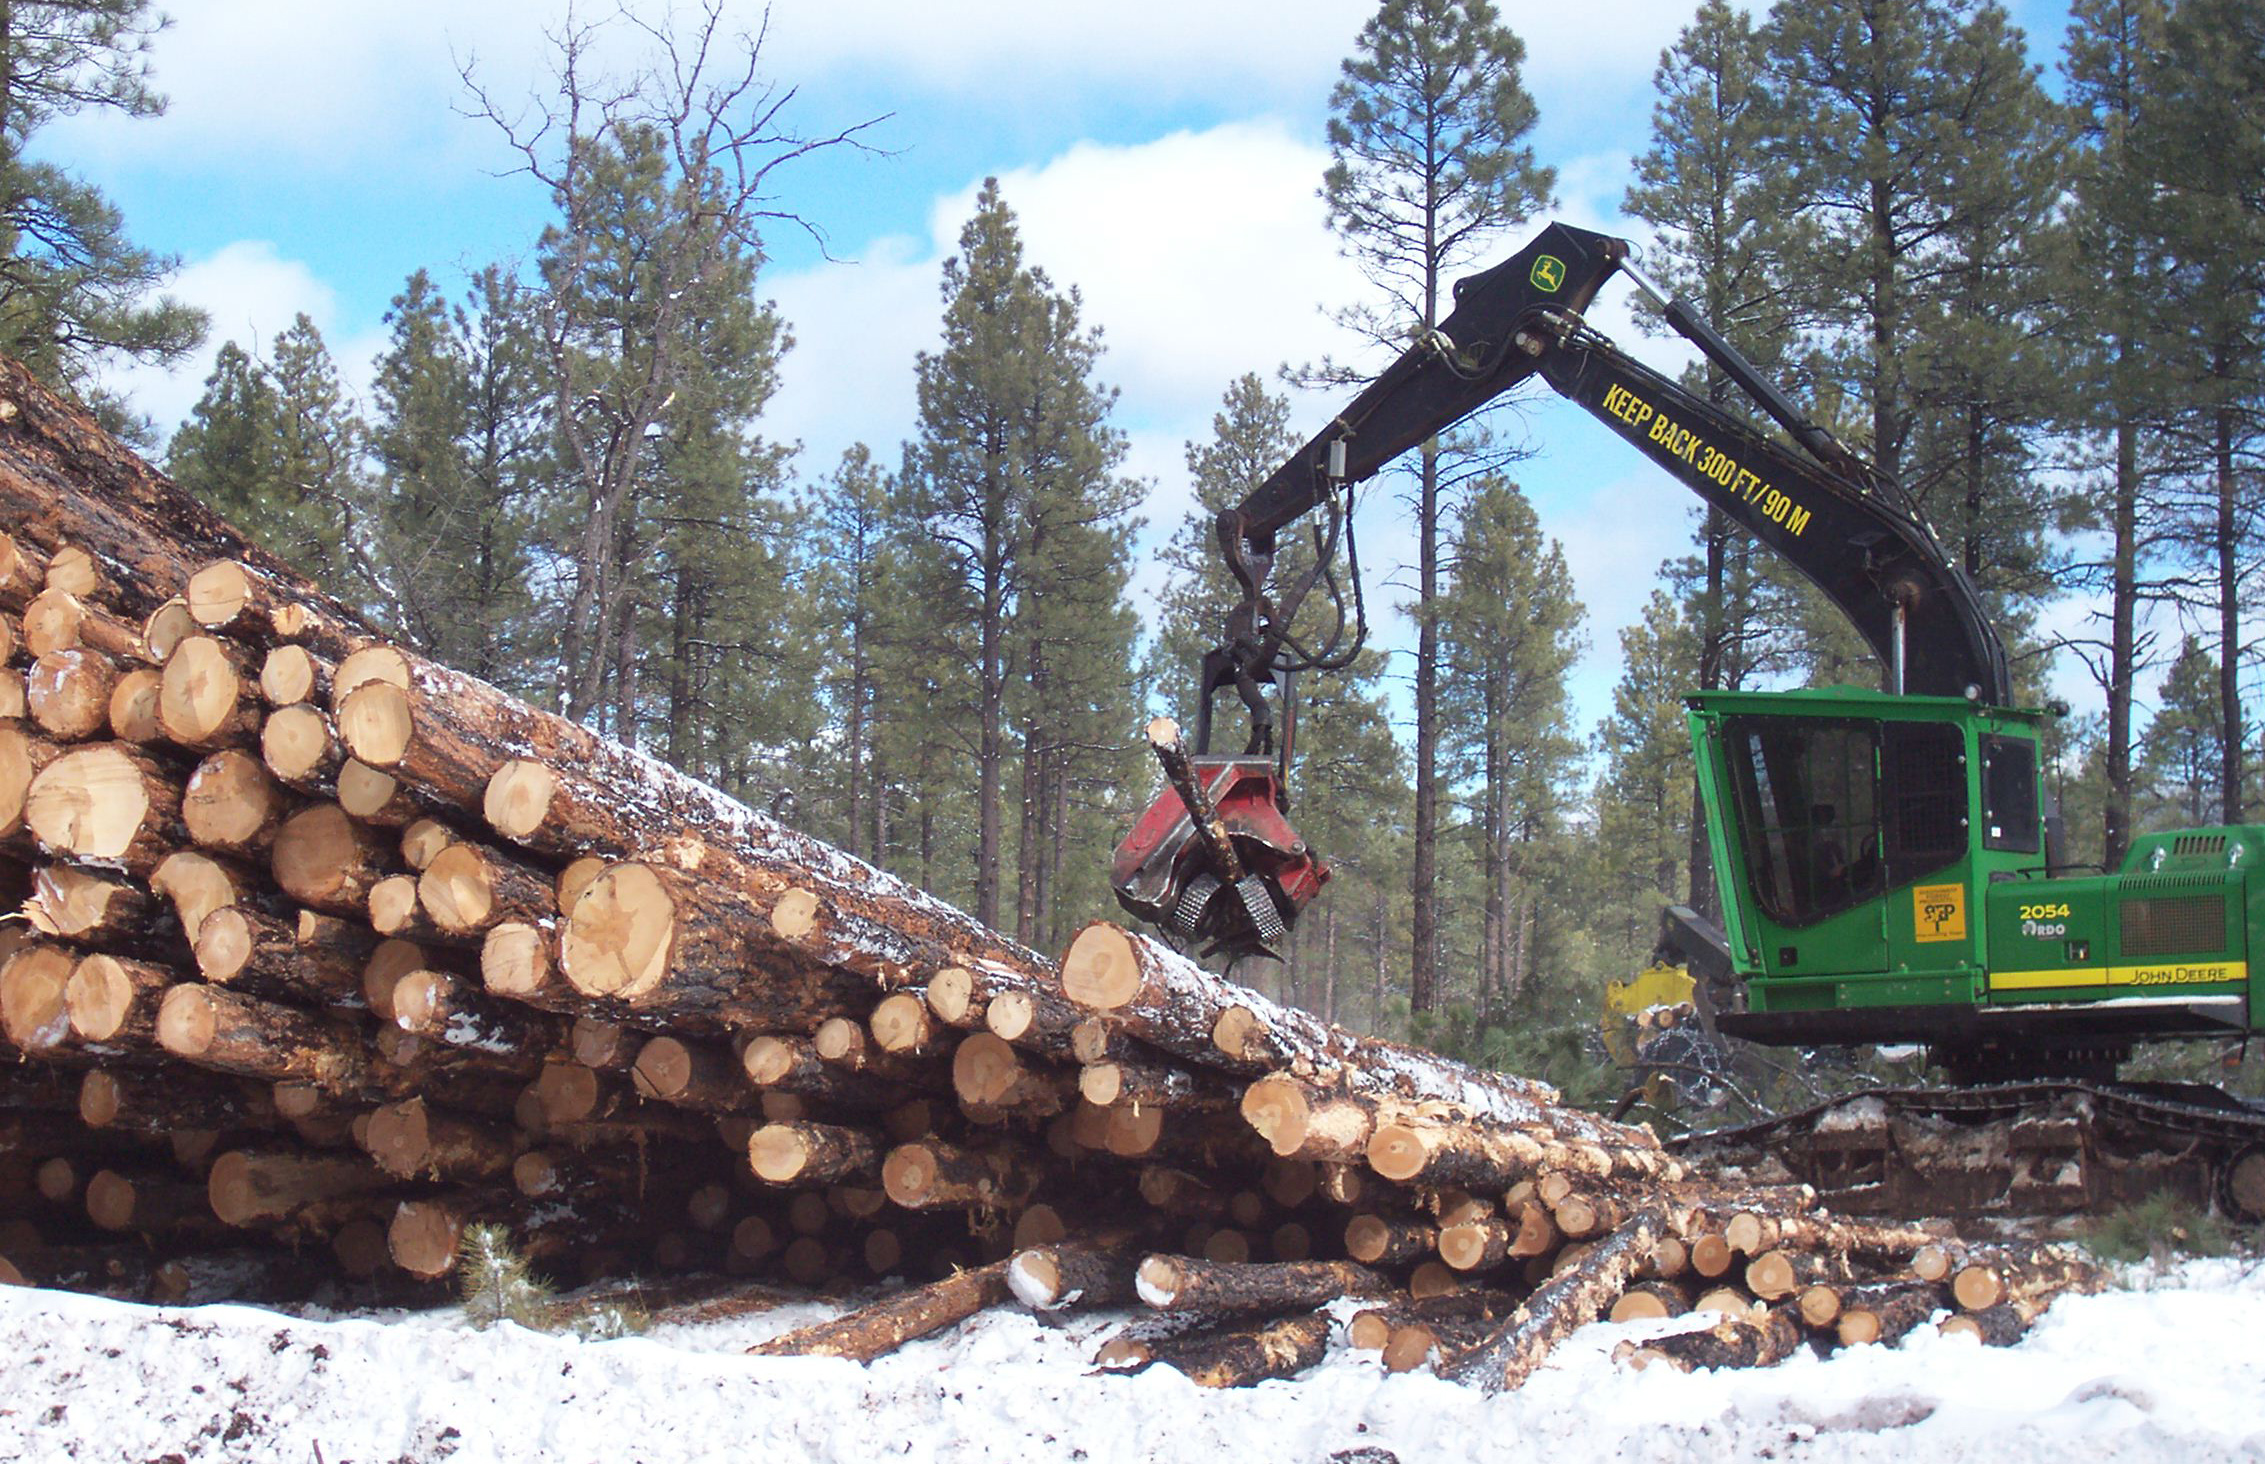 forest industry Forest industry news | forest2market's blog covers forestry, wood products, pulp and paper products, bioenergy, biochemicals and sustainability topics.